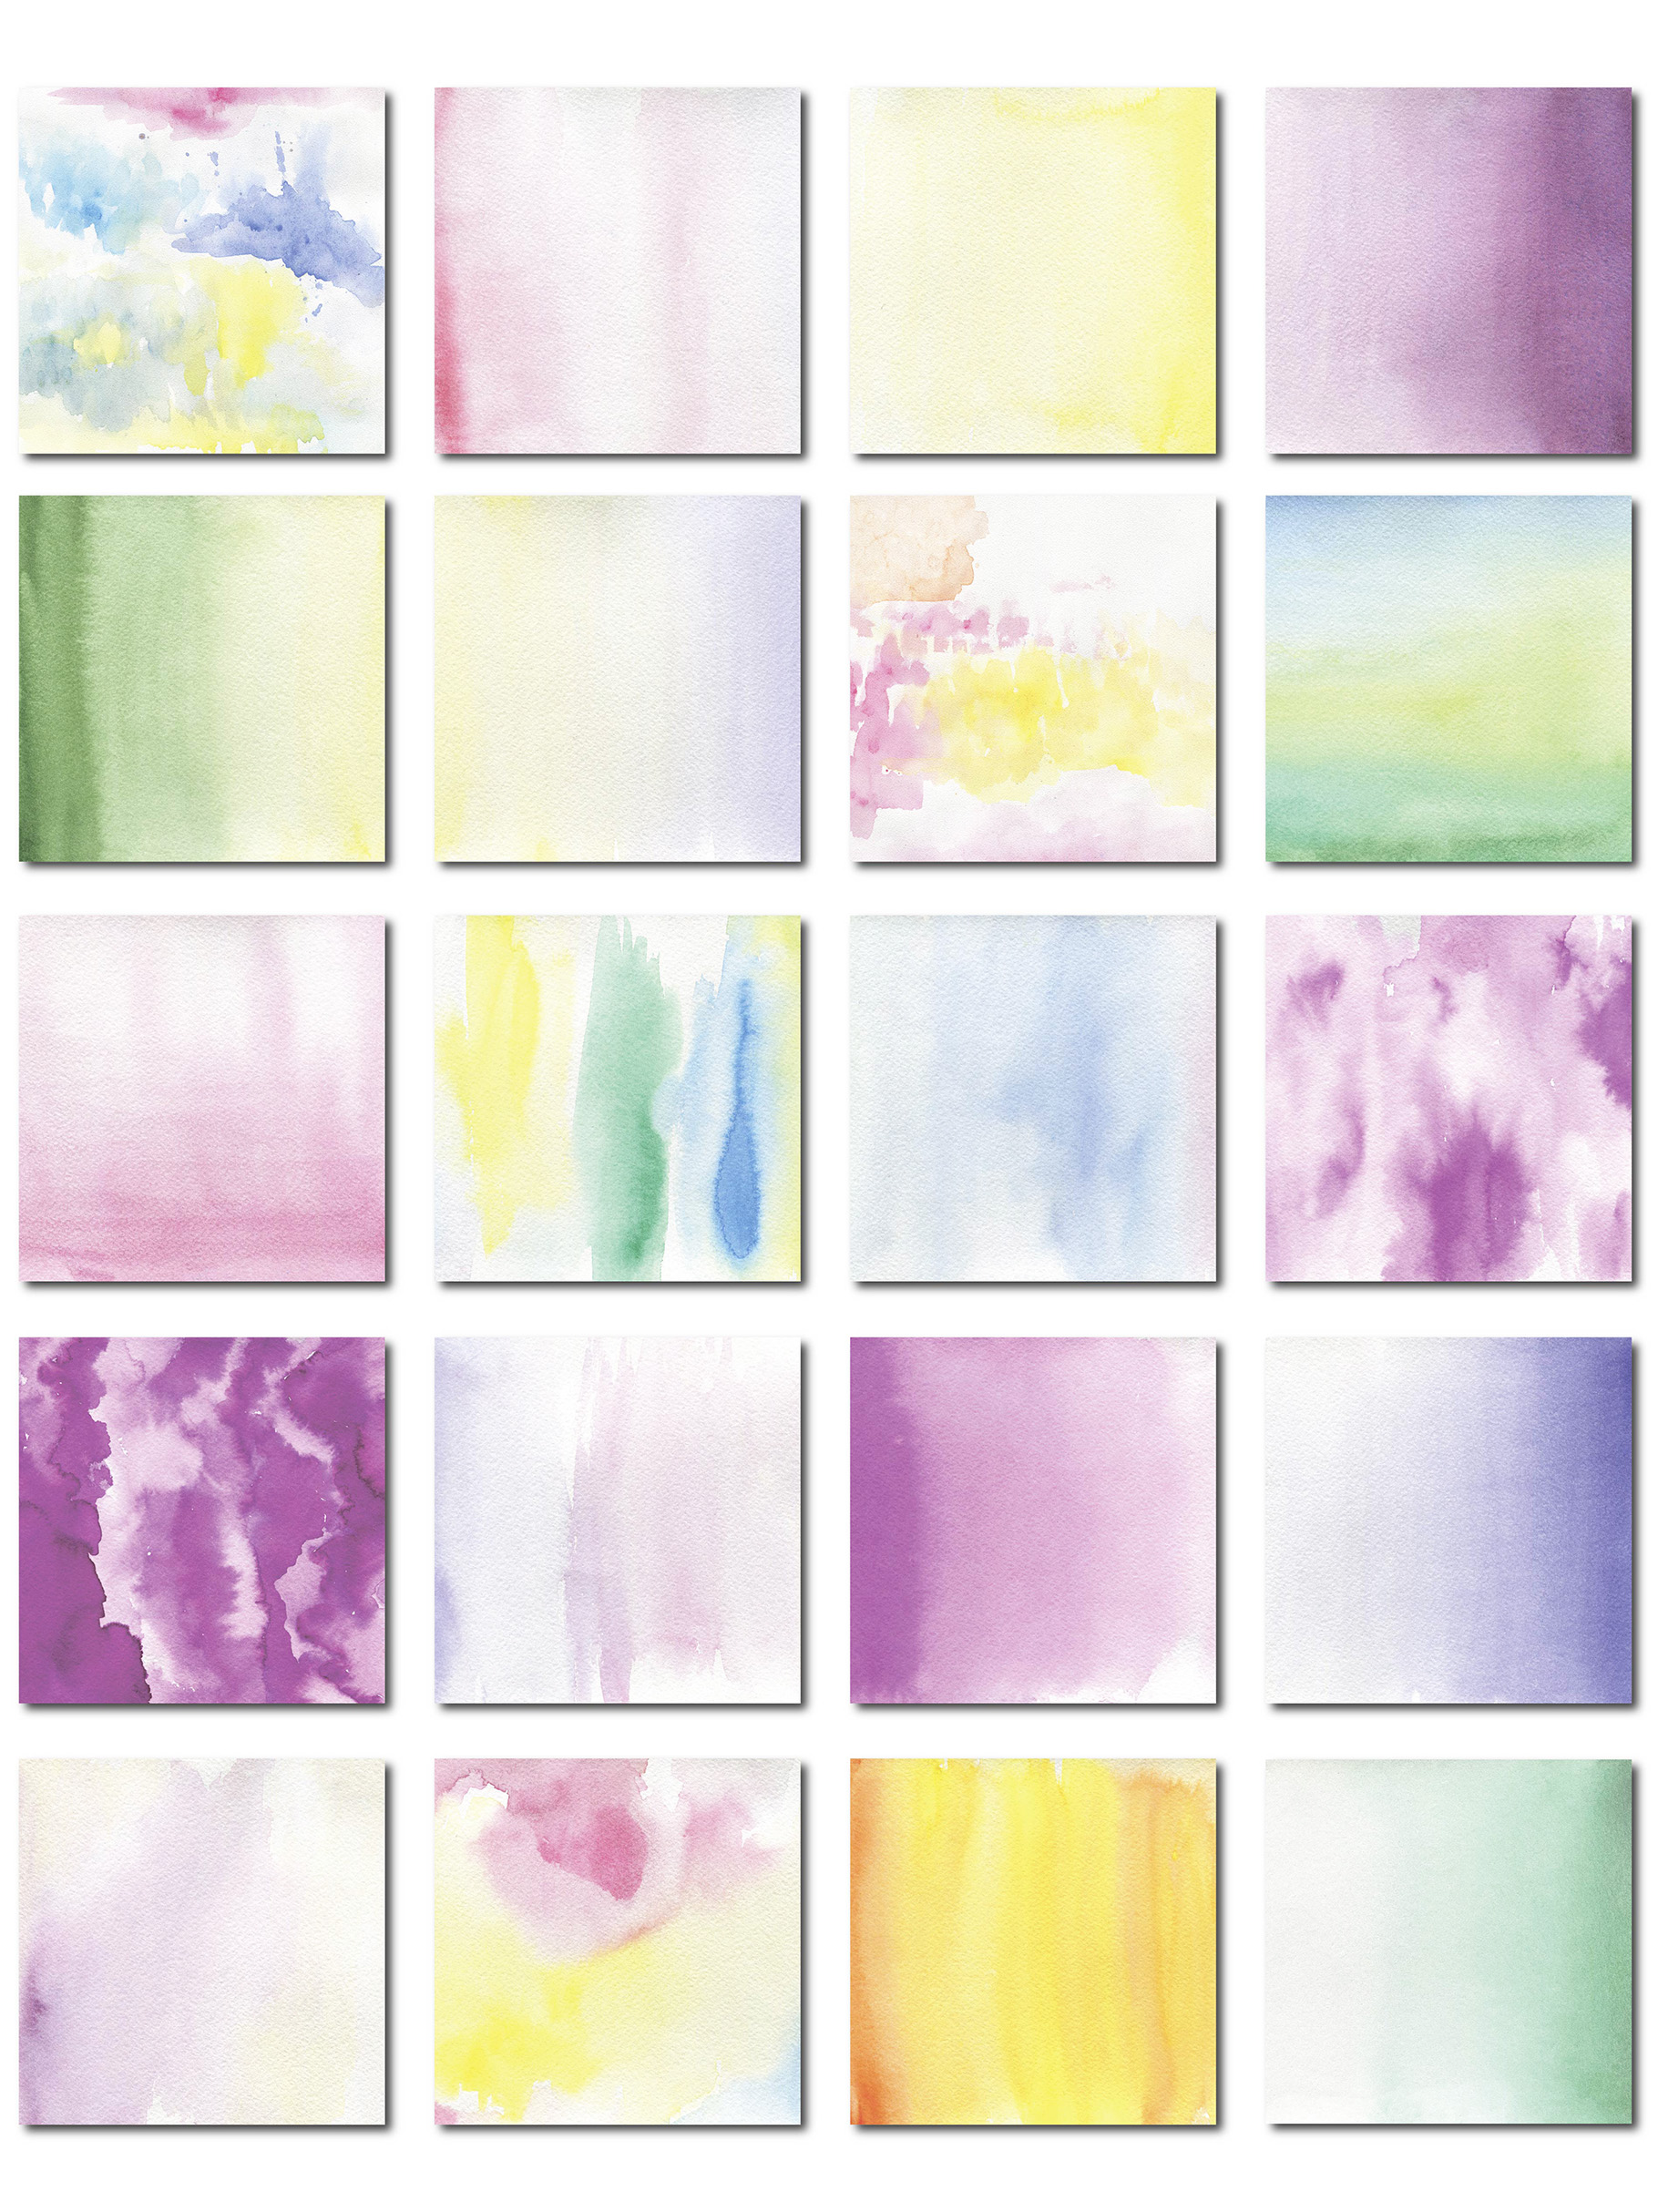 69  Watercolor textures backgrounds! example image 3